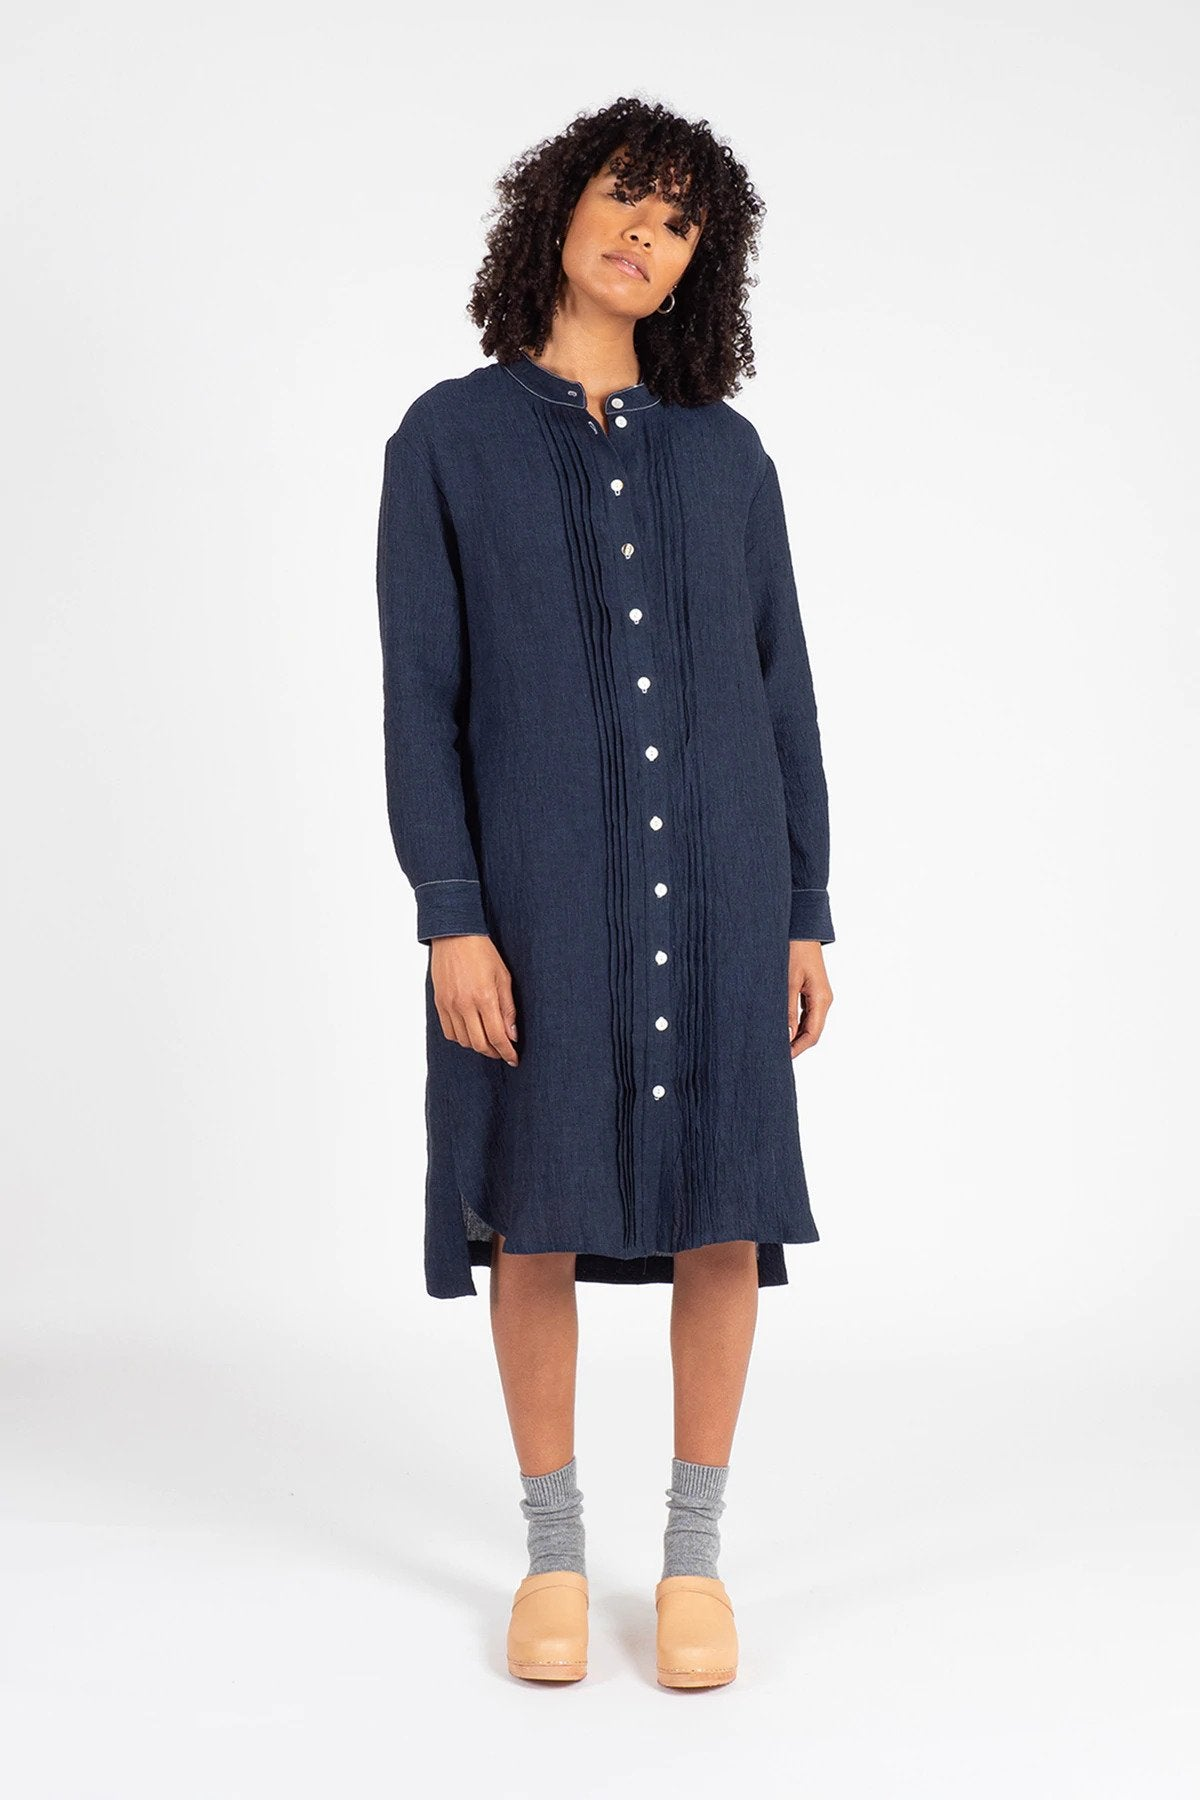 Navy Linen Shirt Dress Dresses Ethical Sustainable Vegan Organic Australian fashion womens clothes